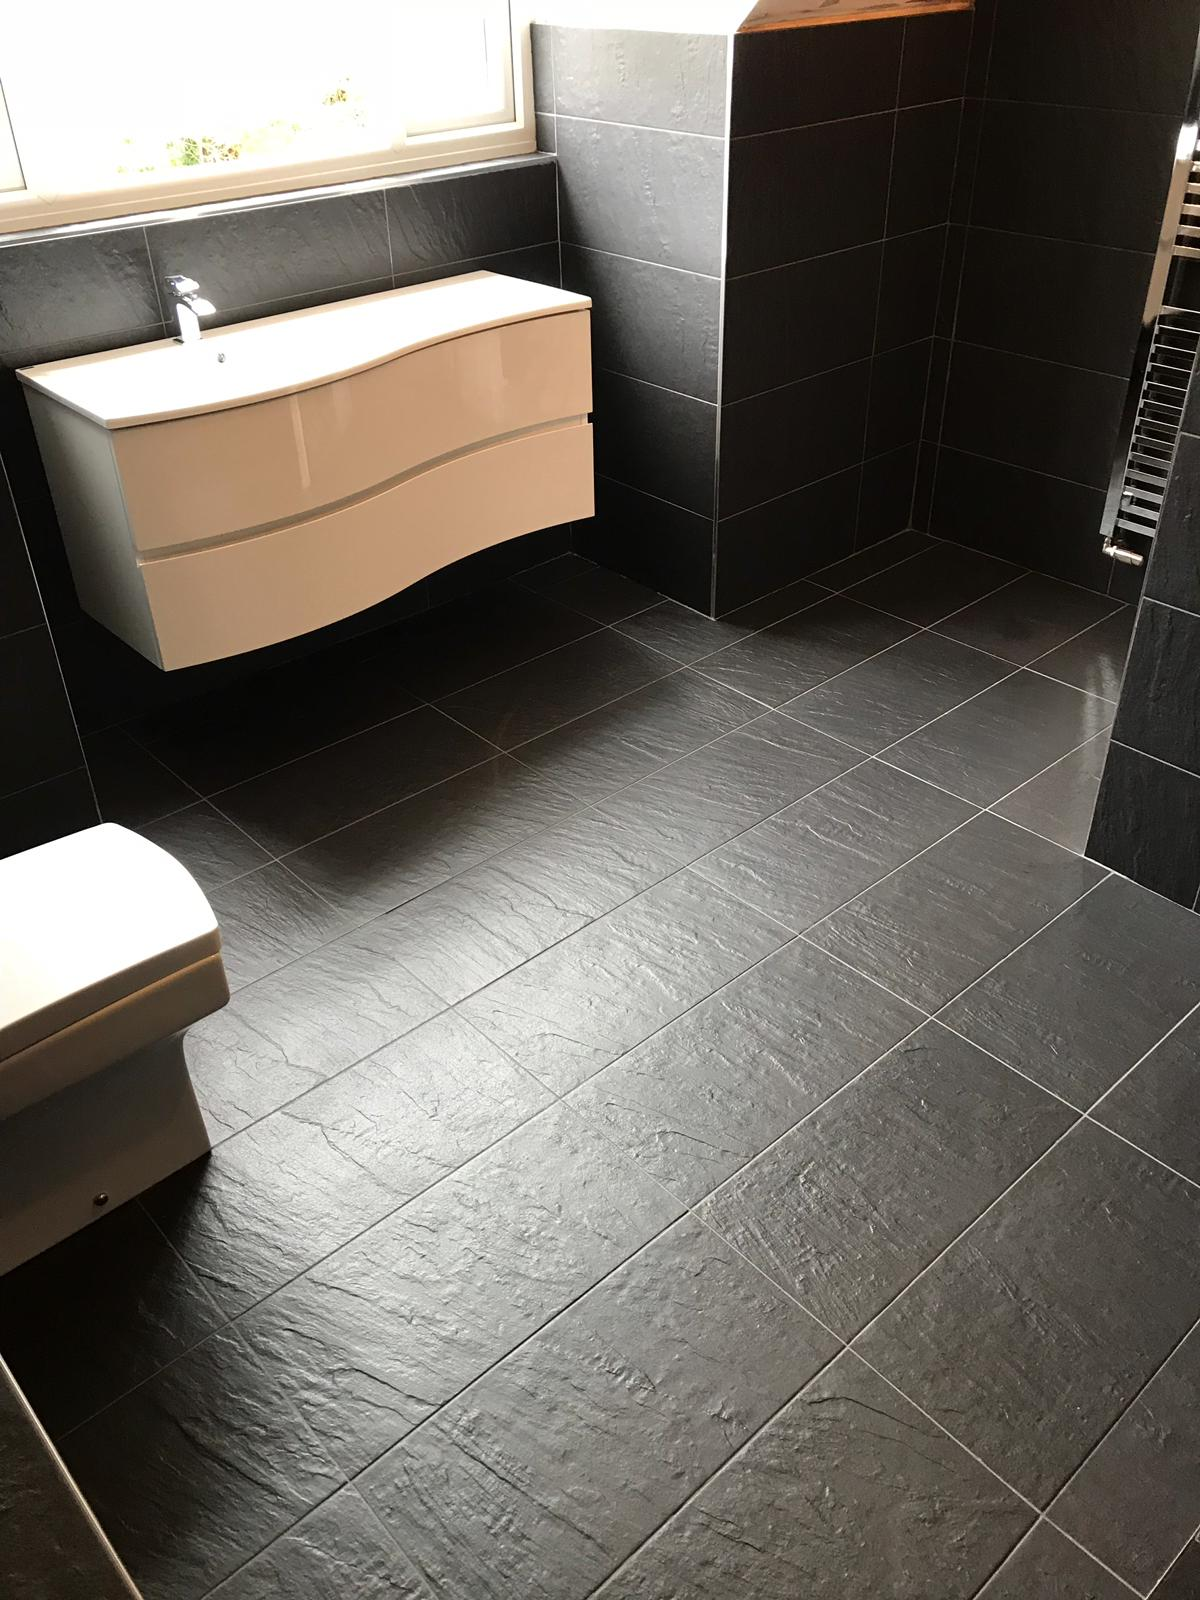 Black Porcelain Bathroom Floor After Cleaning Stevenage